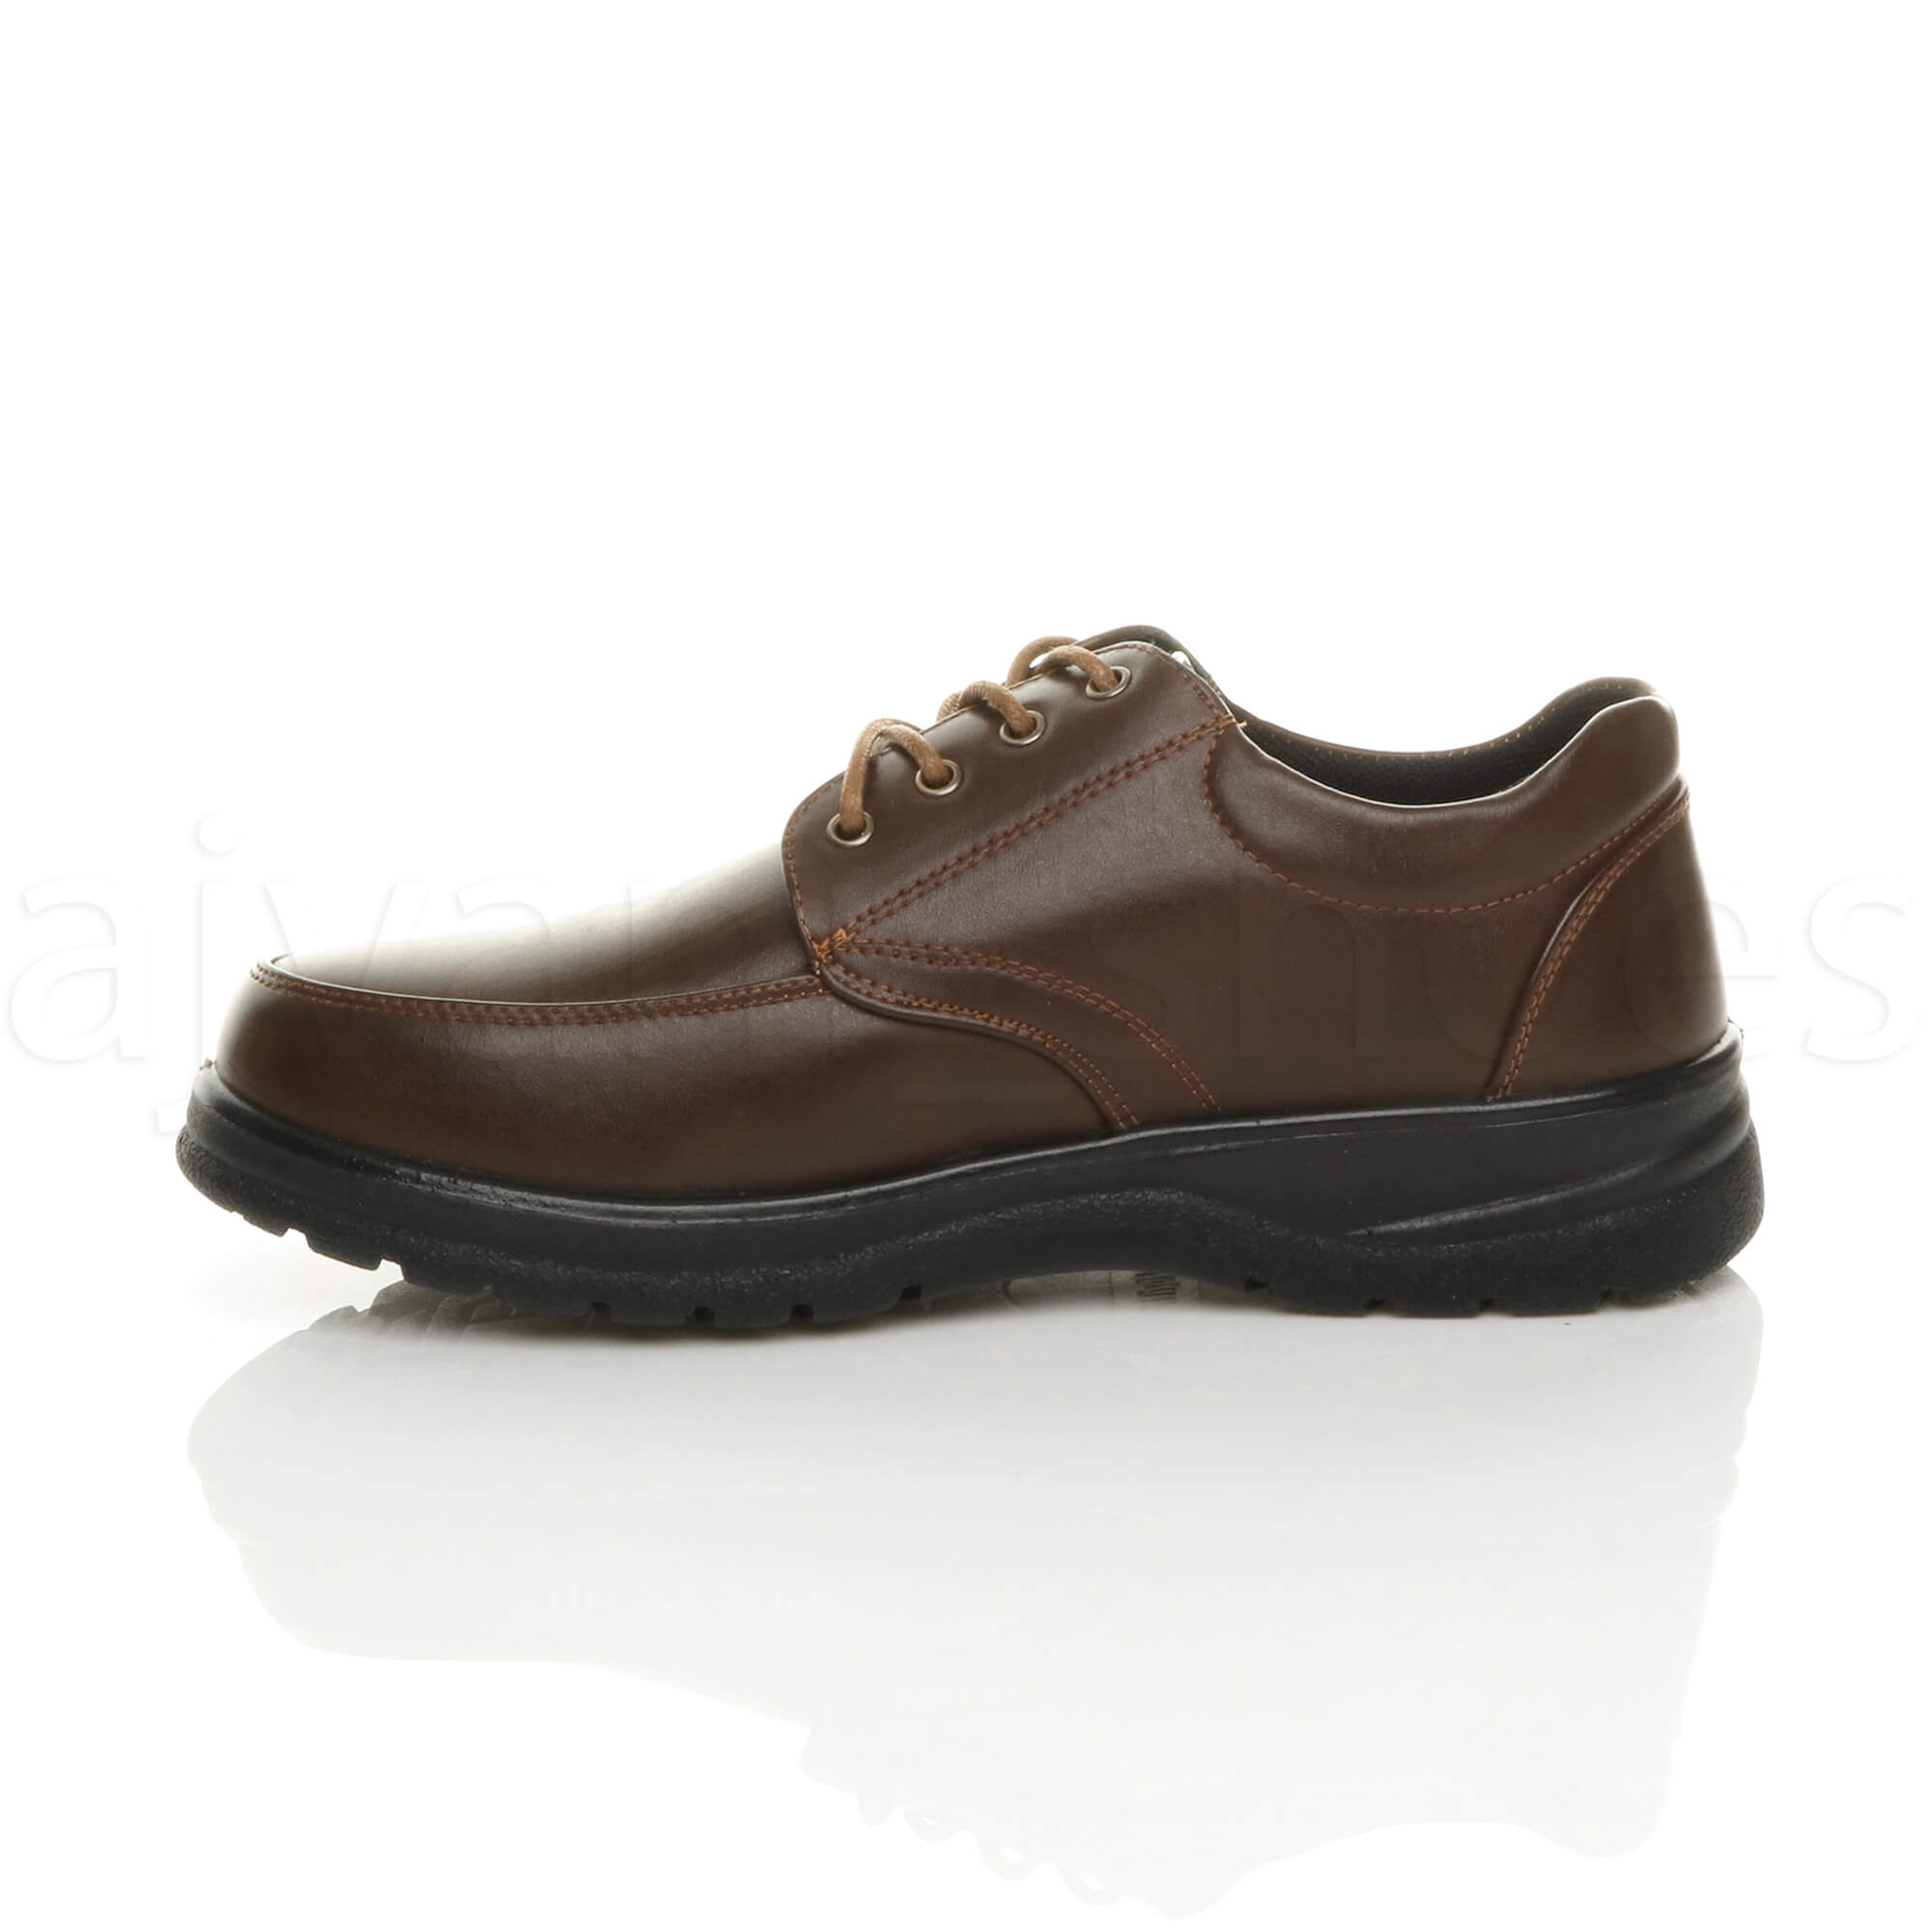 MENS-LACE-UP-CASUAL-MEMORY-FOAM-INSOLE-COMFORT-CUSHIONED-WORK-SHOES-SIZE thumbnail 12